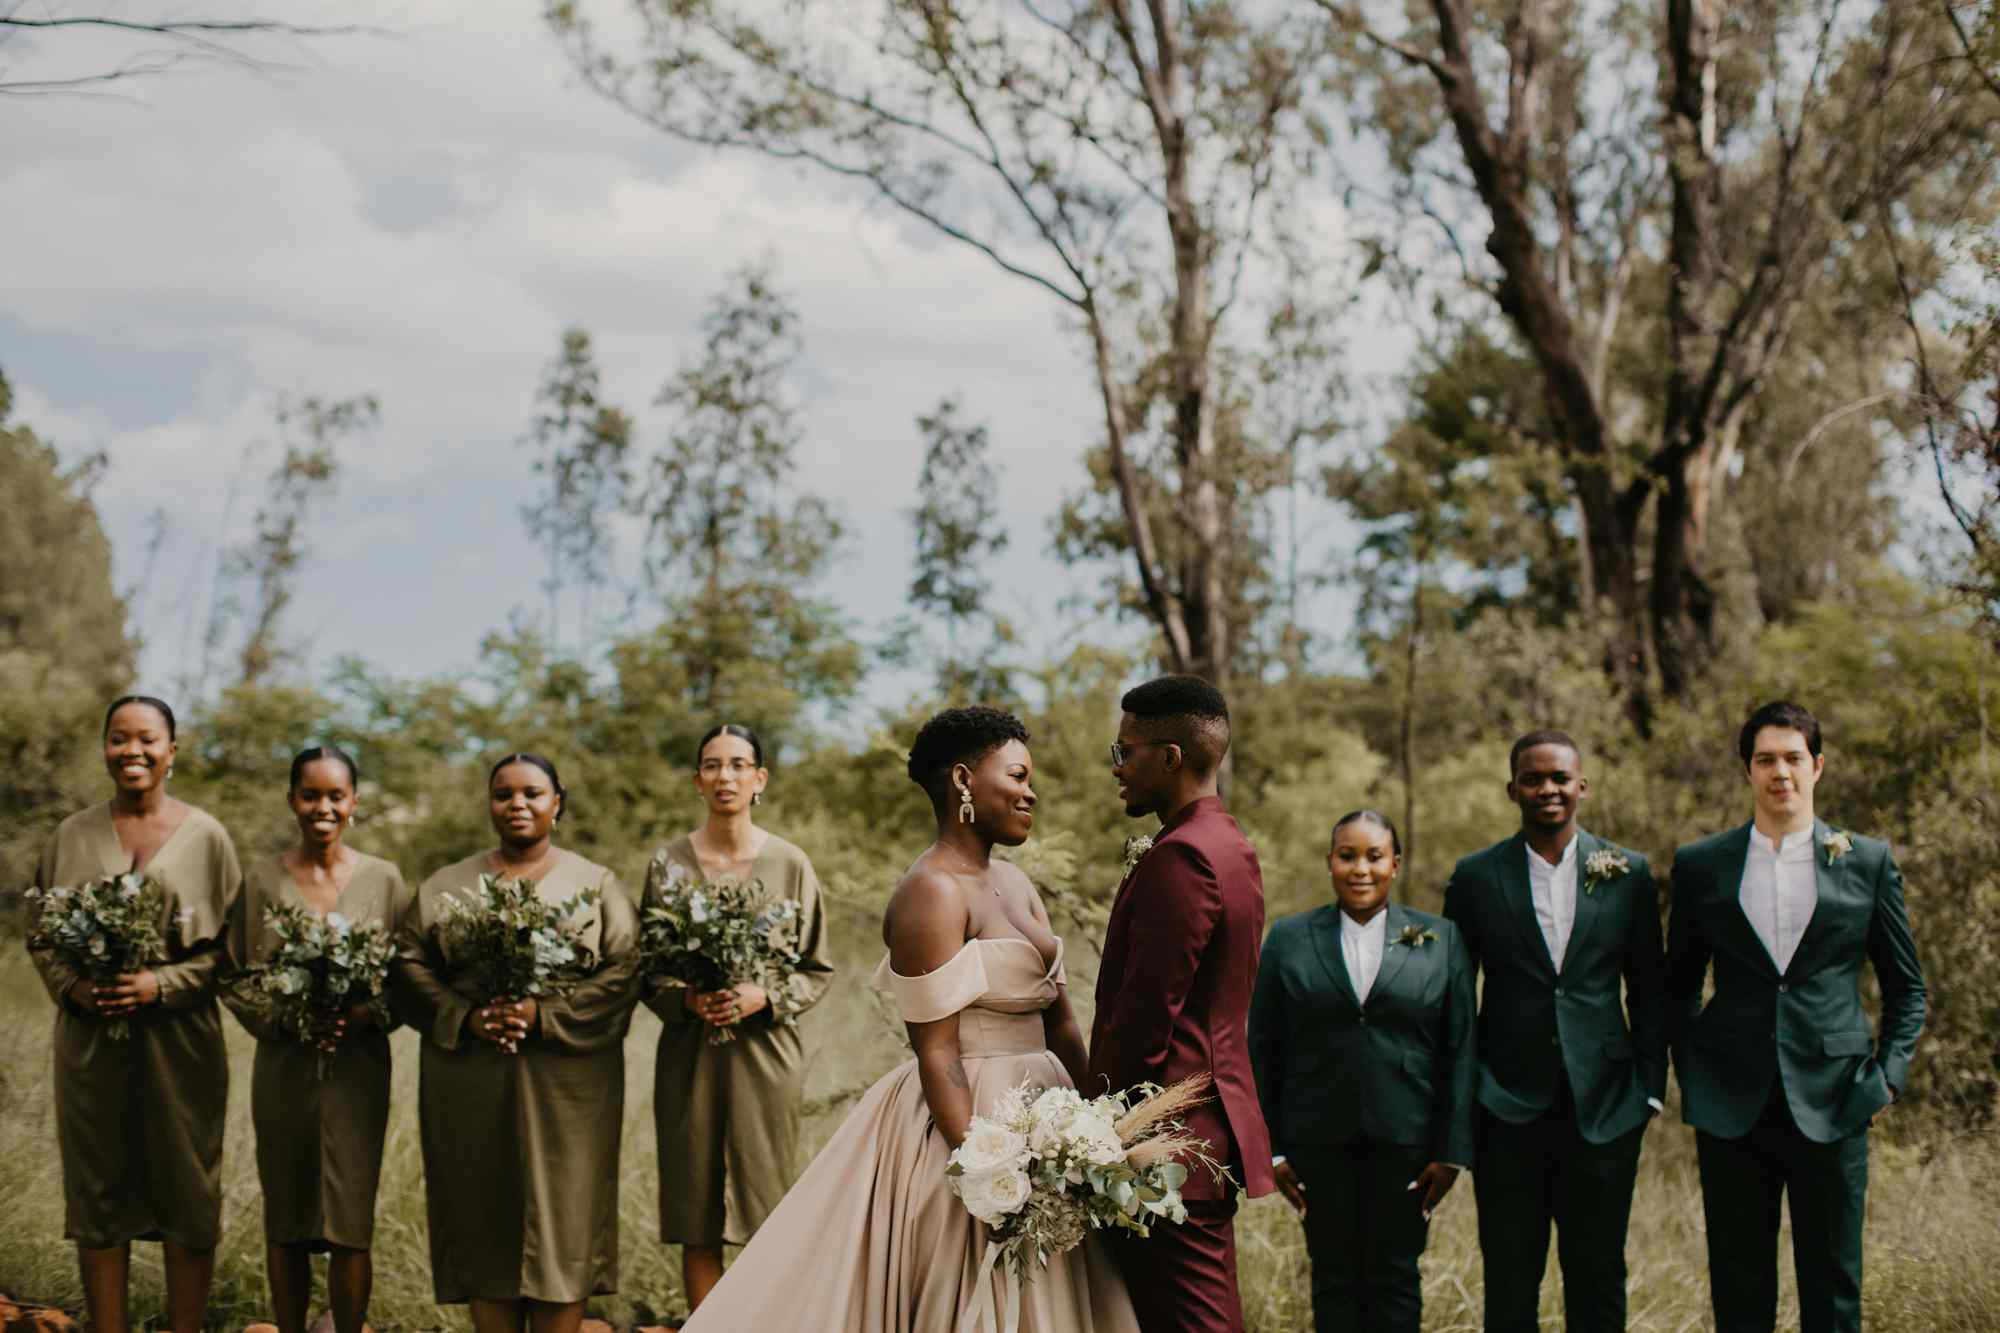 Colorful bridal party in greens and burgundy